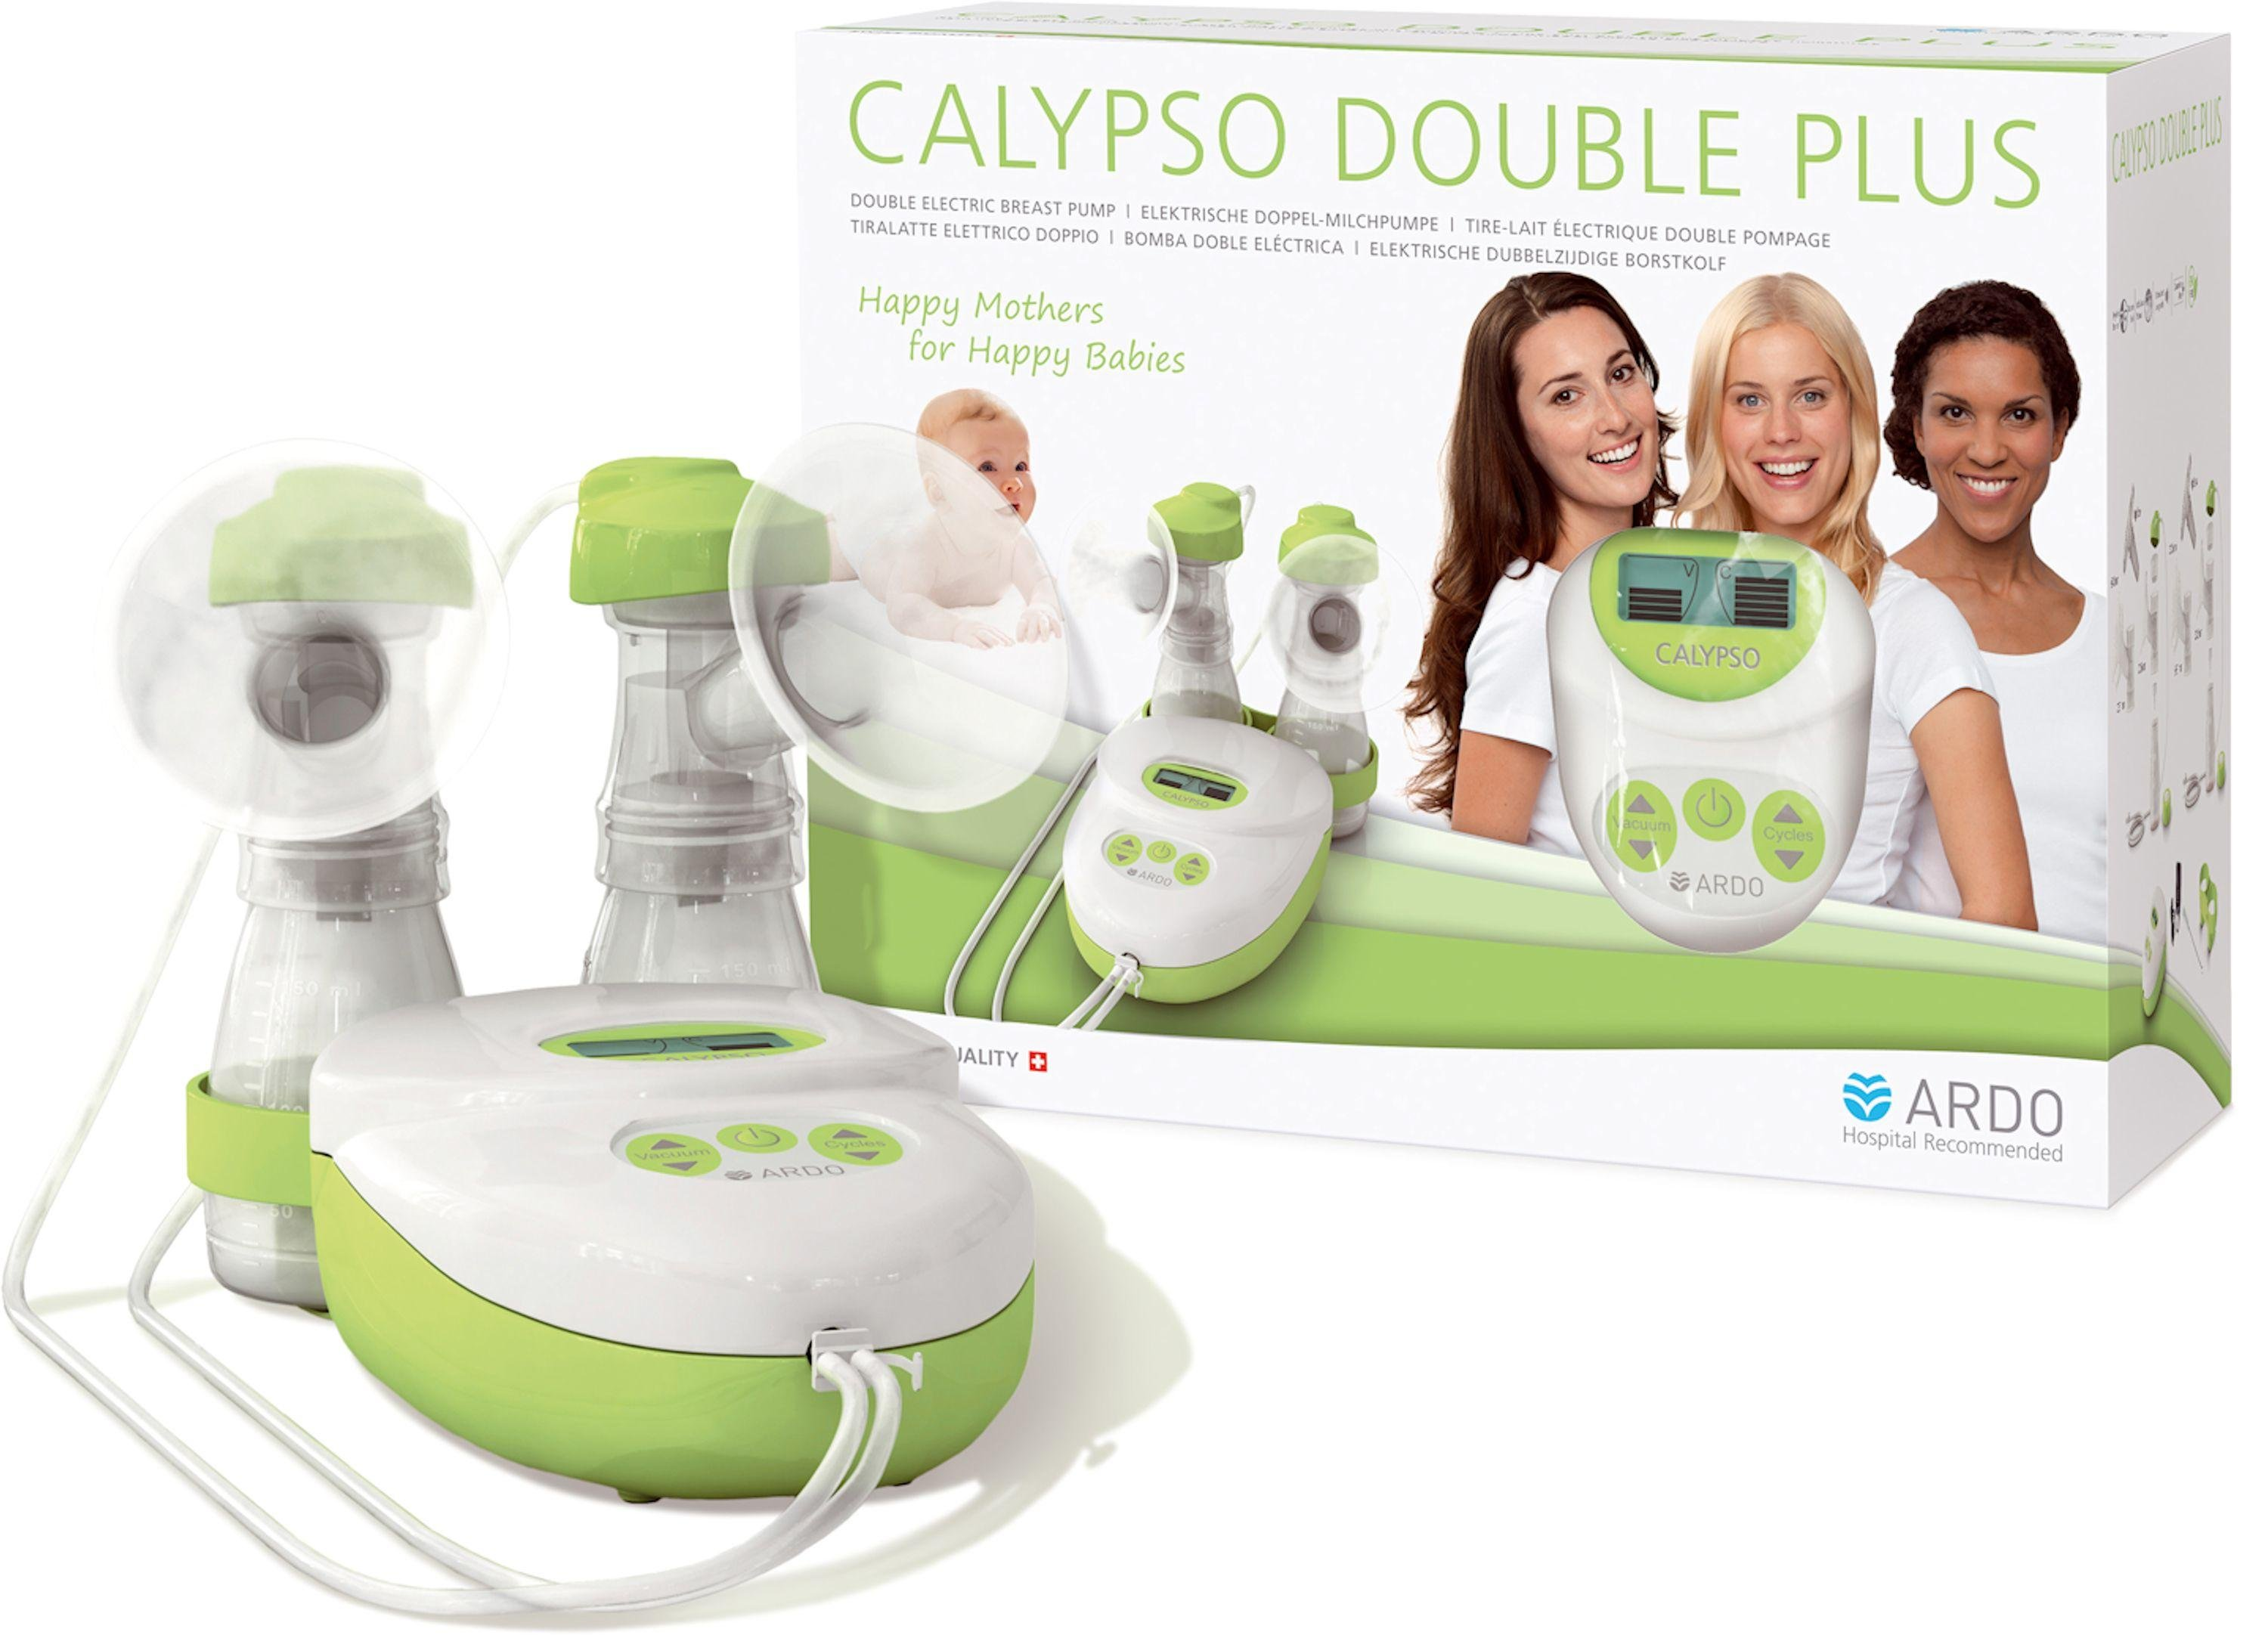 Image of Ardo Calypso - Double Plus - Electric Breast Pump